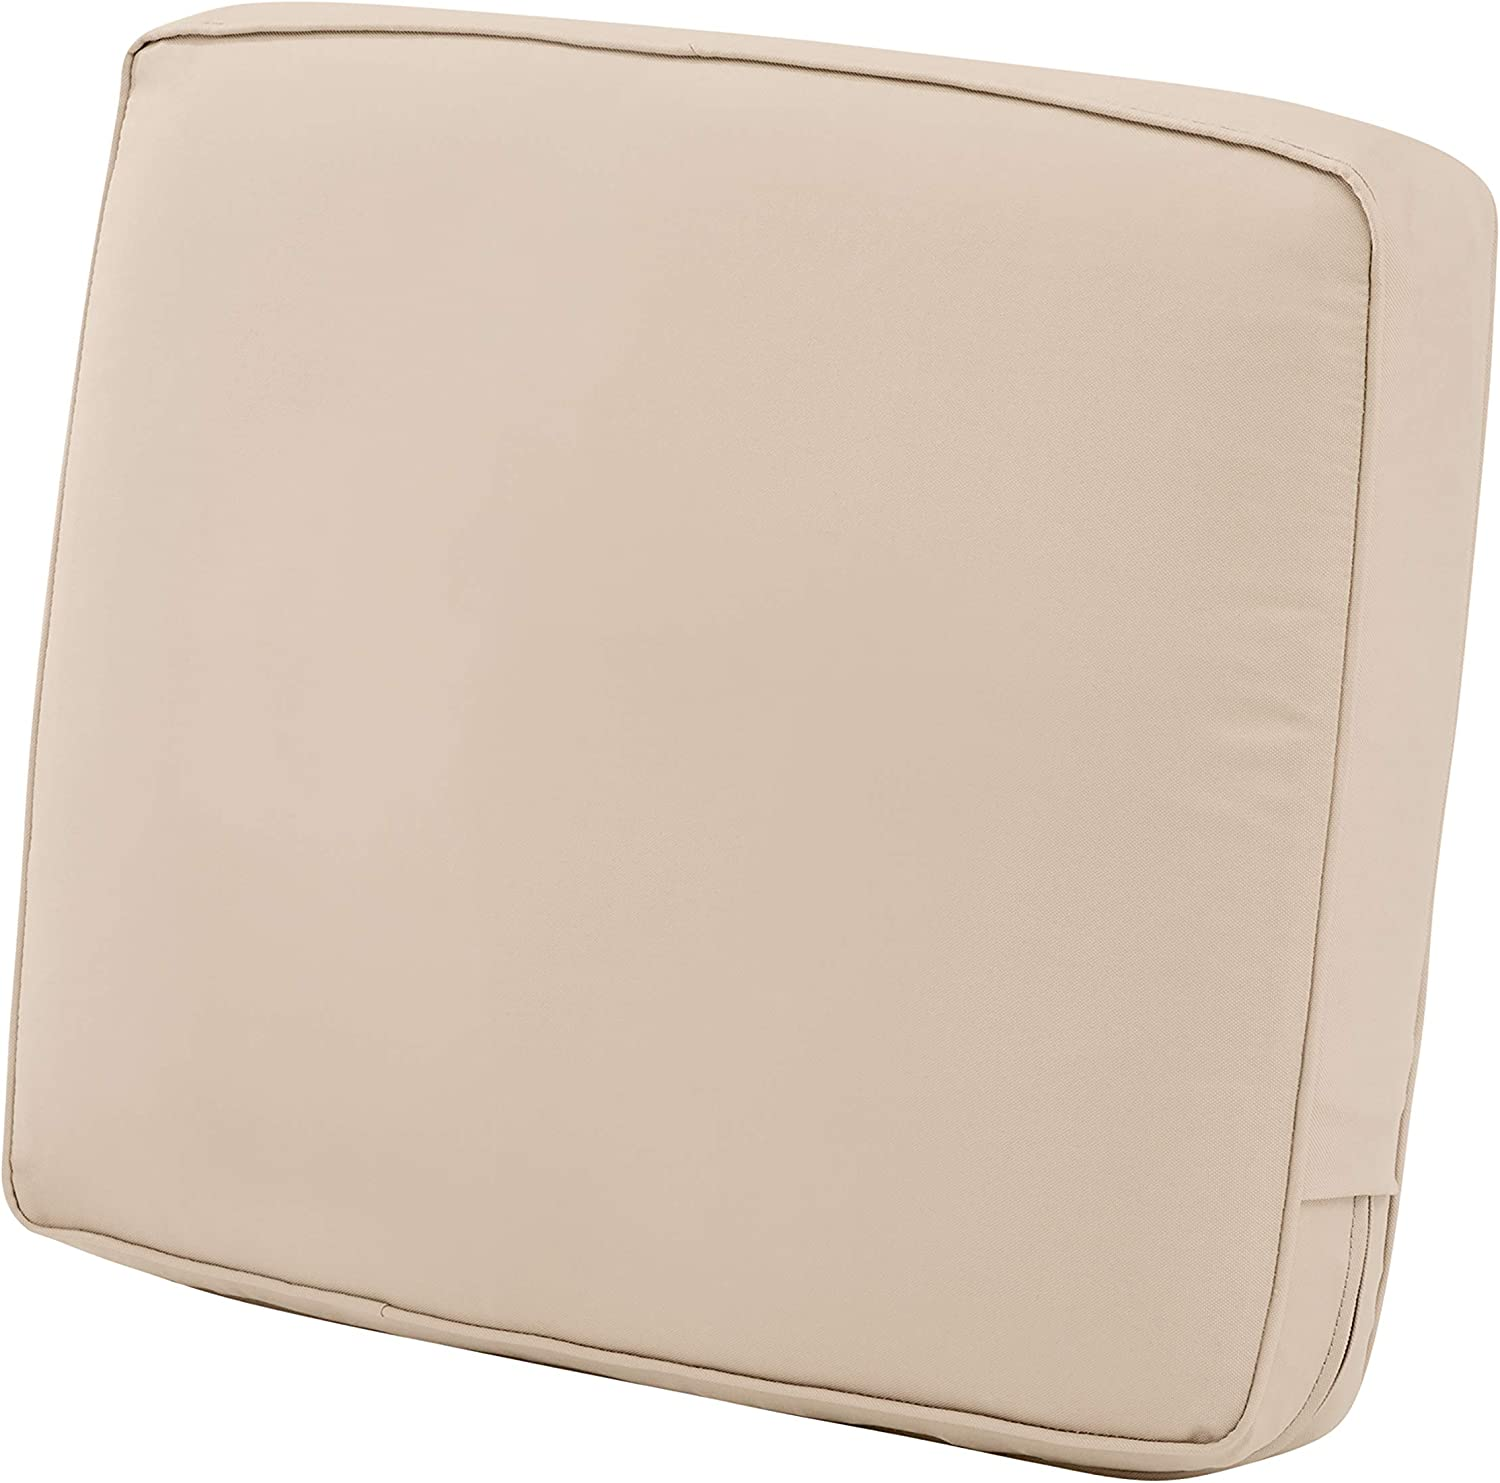 "Classic Accessories Montlake Back Cushion Foam & Slip Cover, Antique Beige, 23x20x4"" Thick"